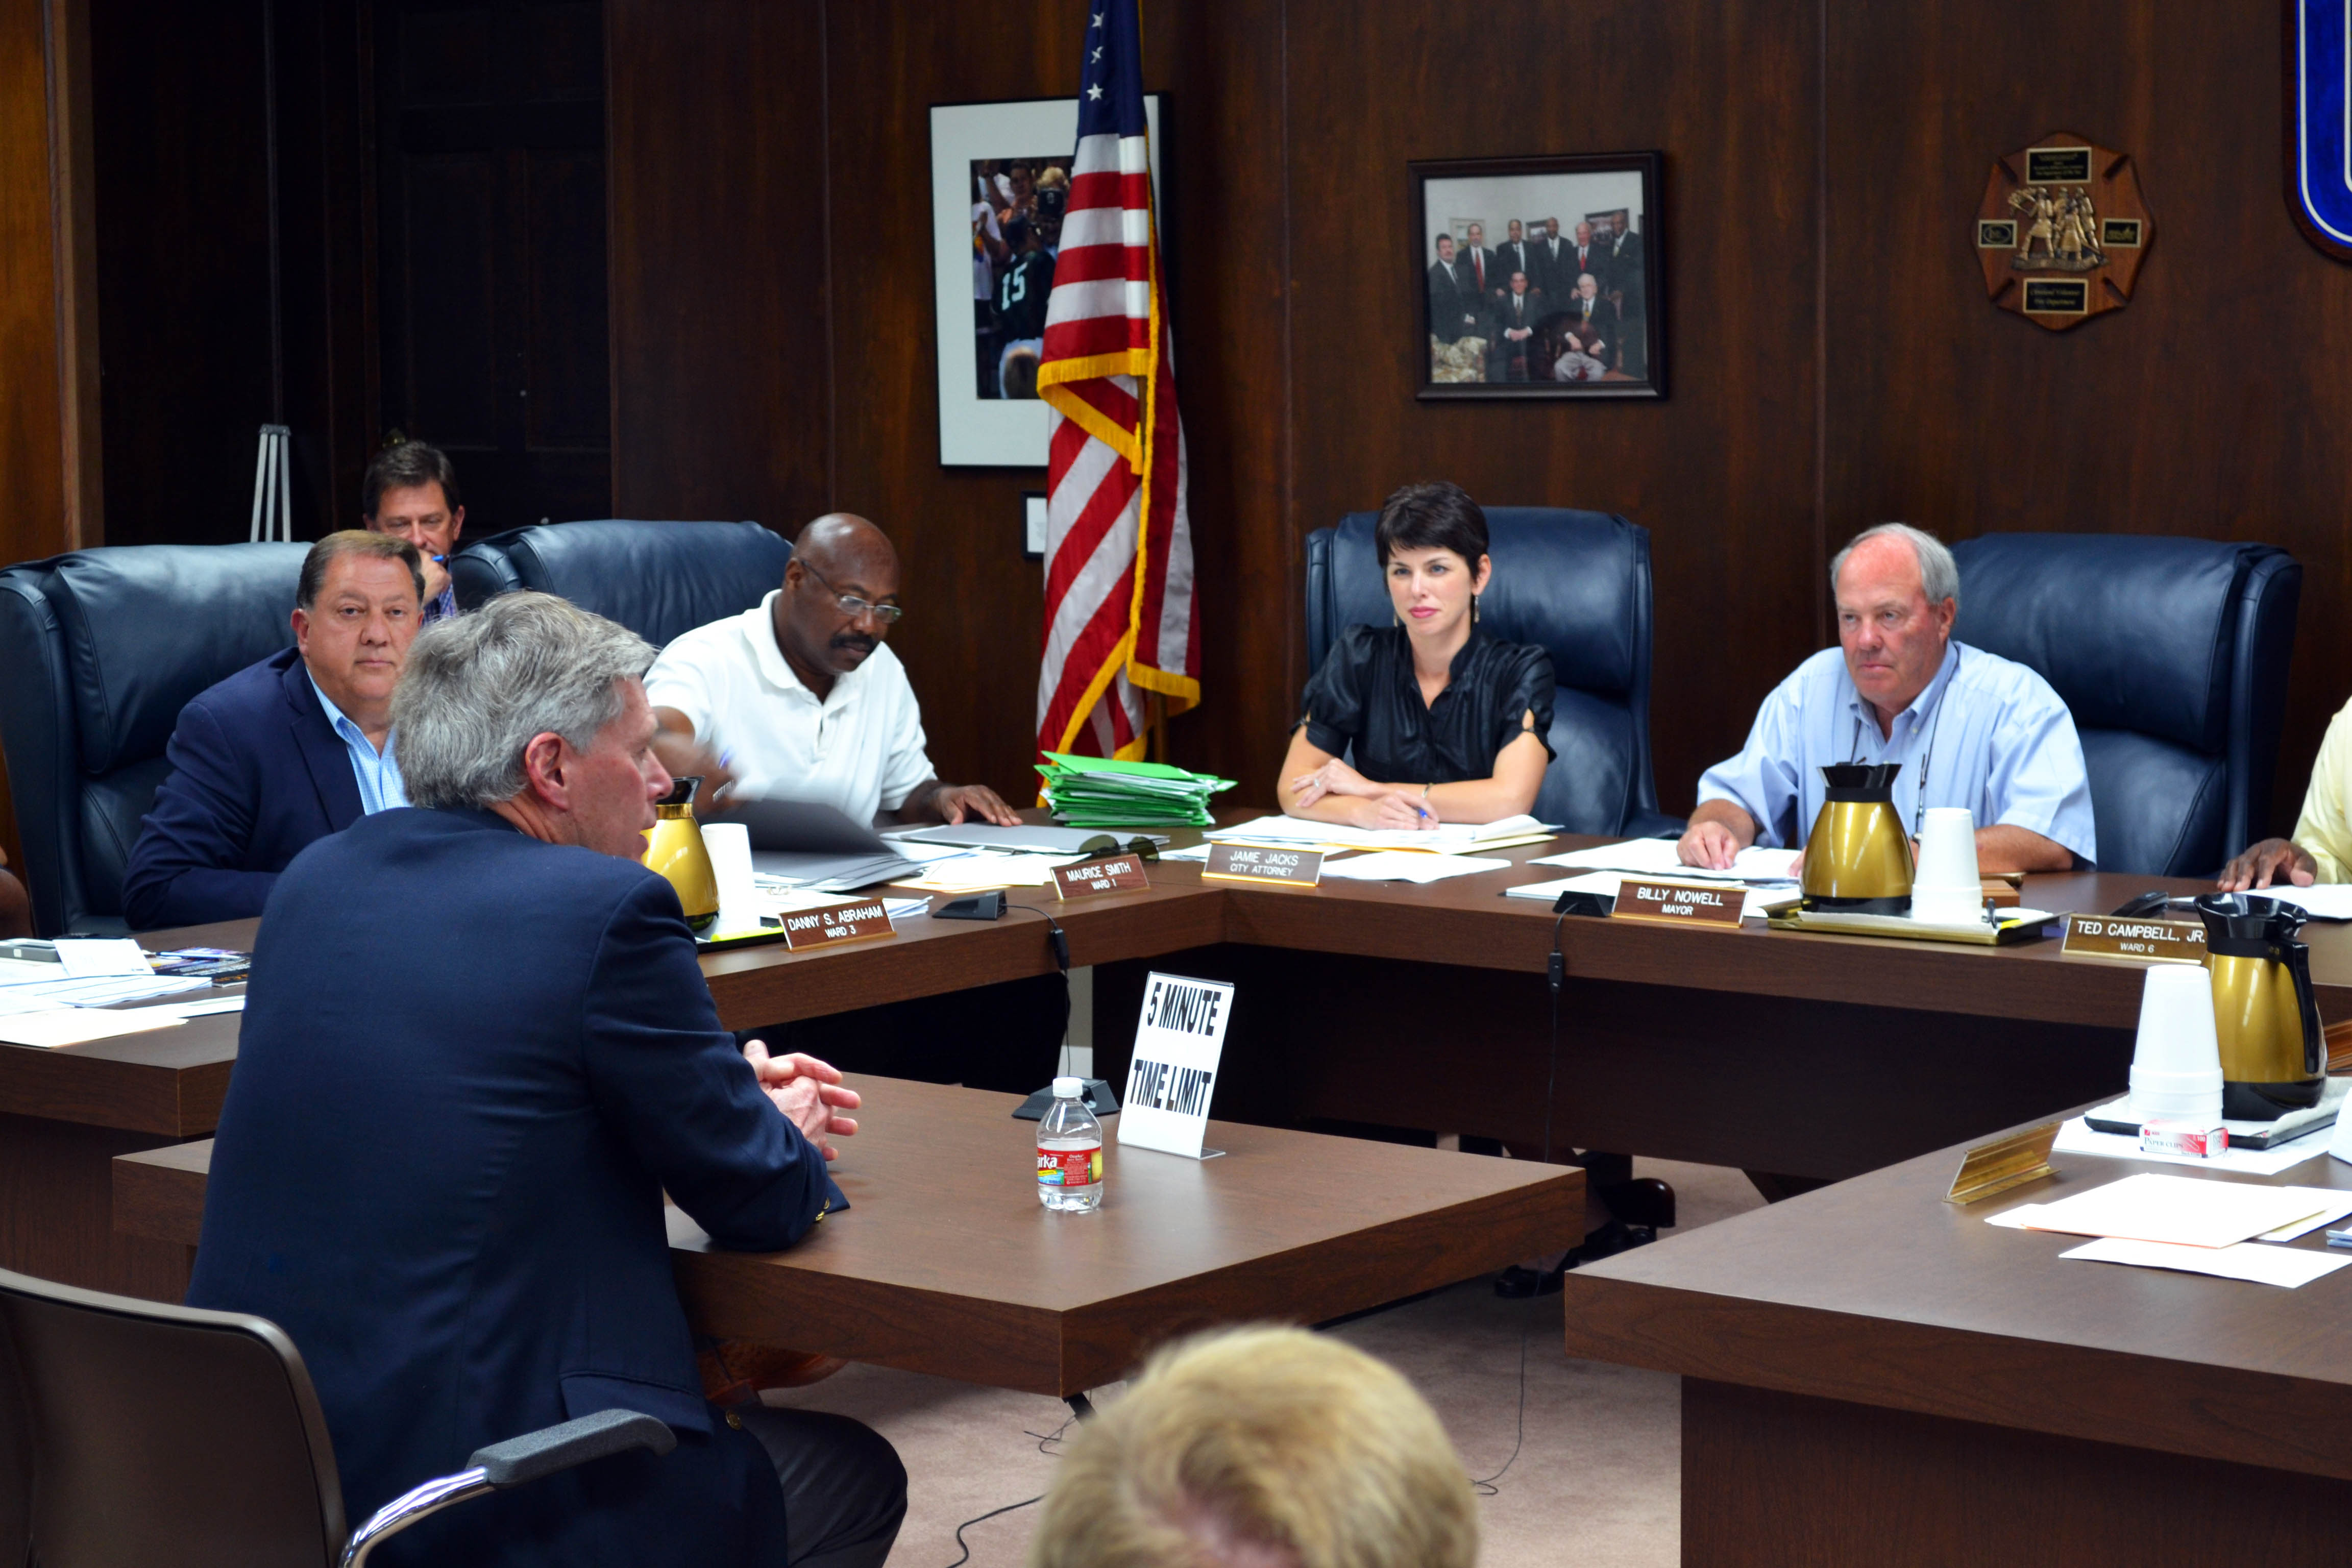 Photo: LaForge meets with mayor Billy Nowell, city attorney Jamie Jacks, and ward representatives to build the campus and community relationship.